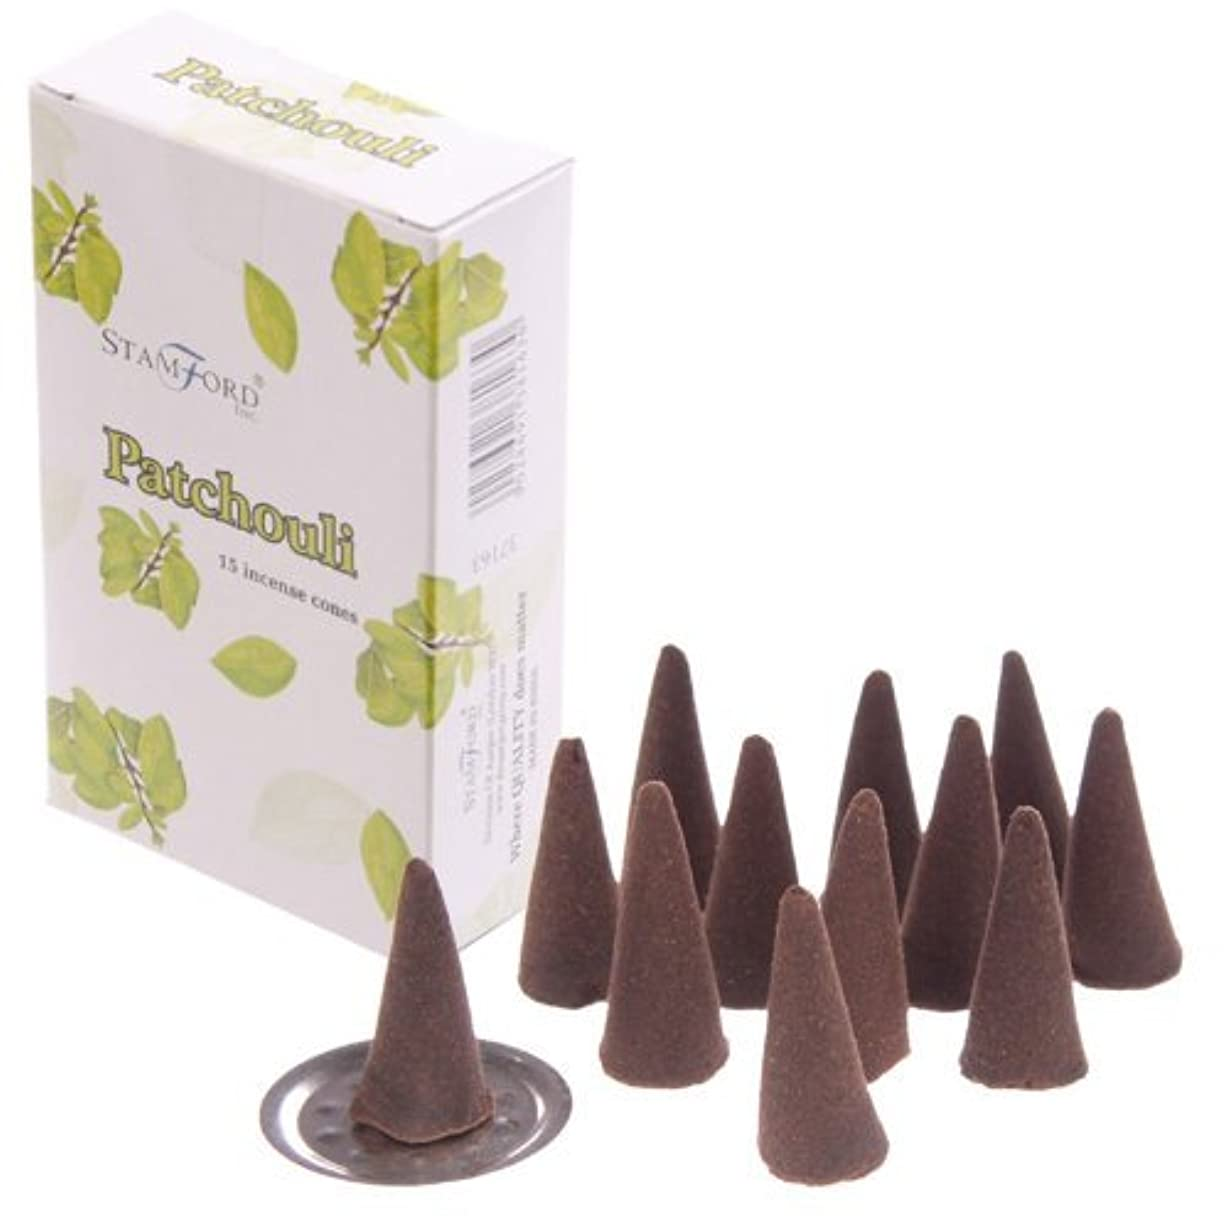 Stamford Incense Cones – Patchouli 37163 by lotusandlime